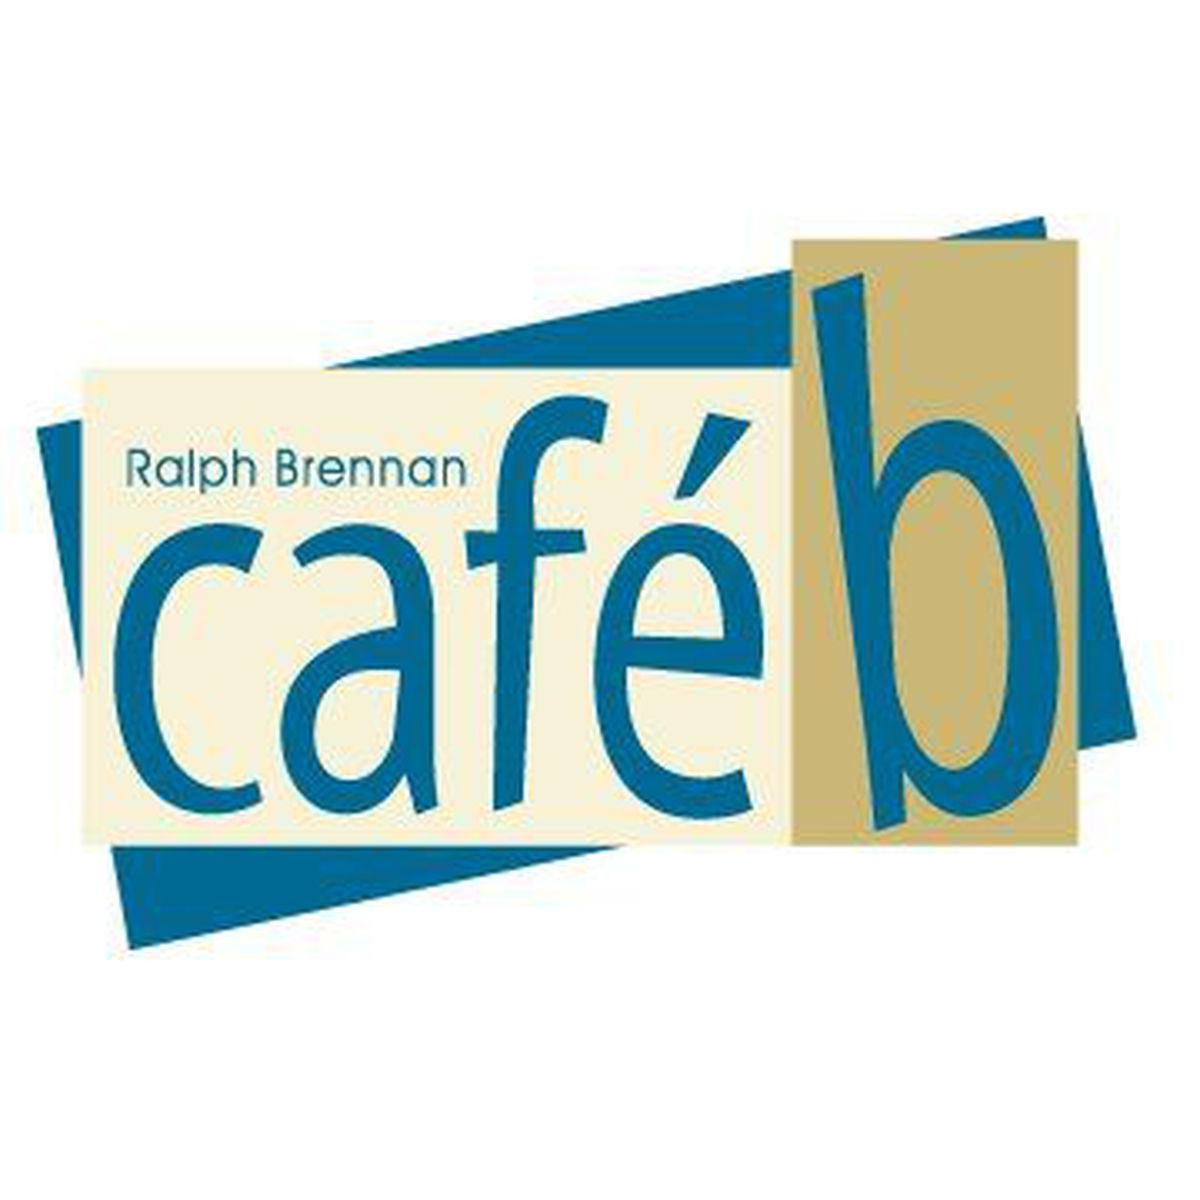 Brennan To Close Cafe B Restaurant In Metairie